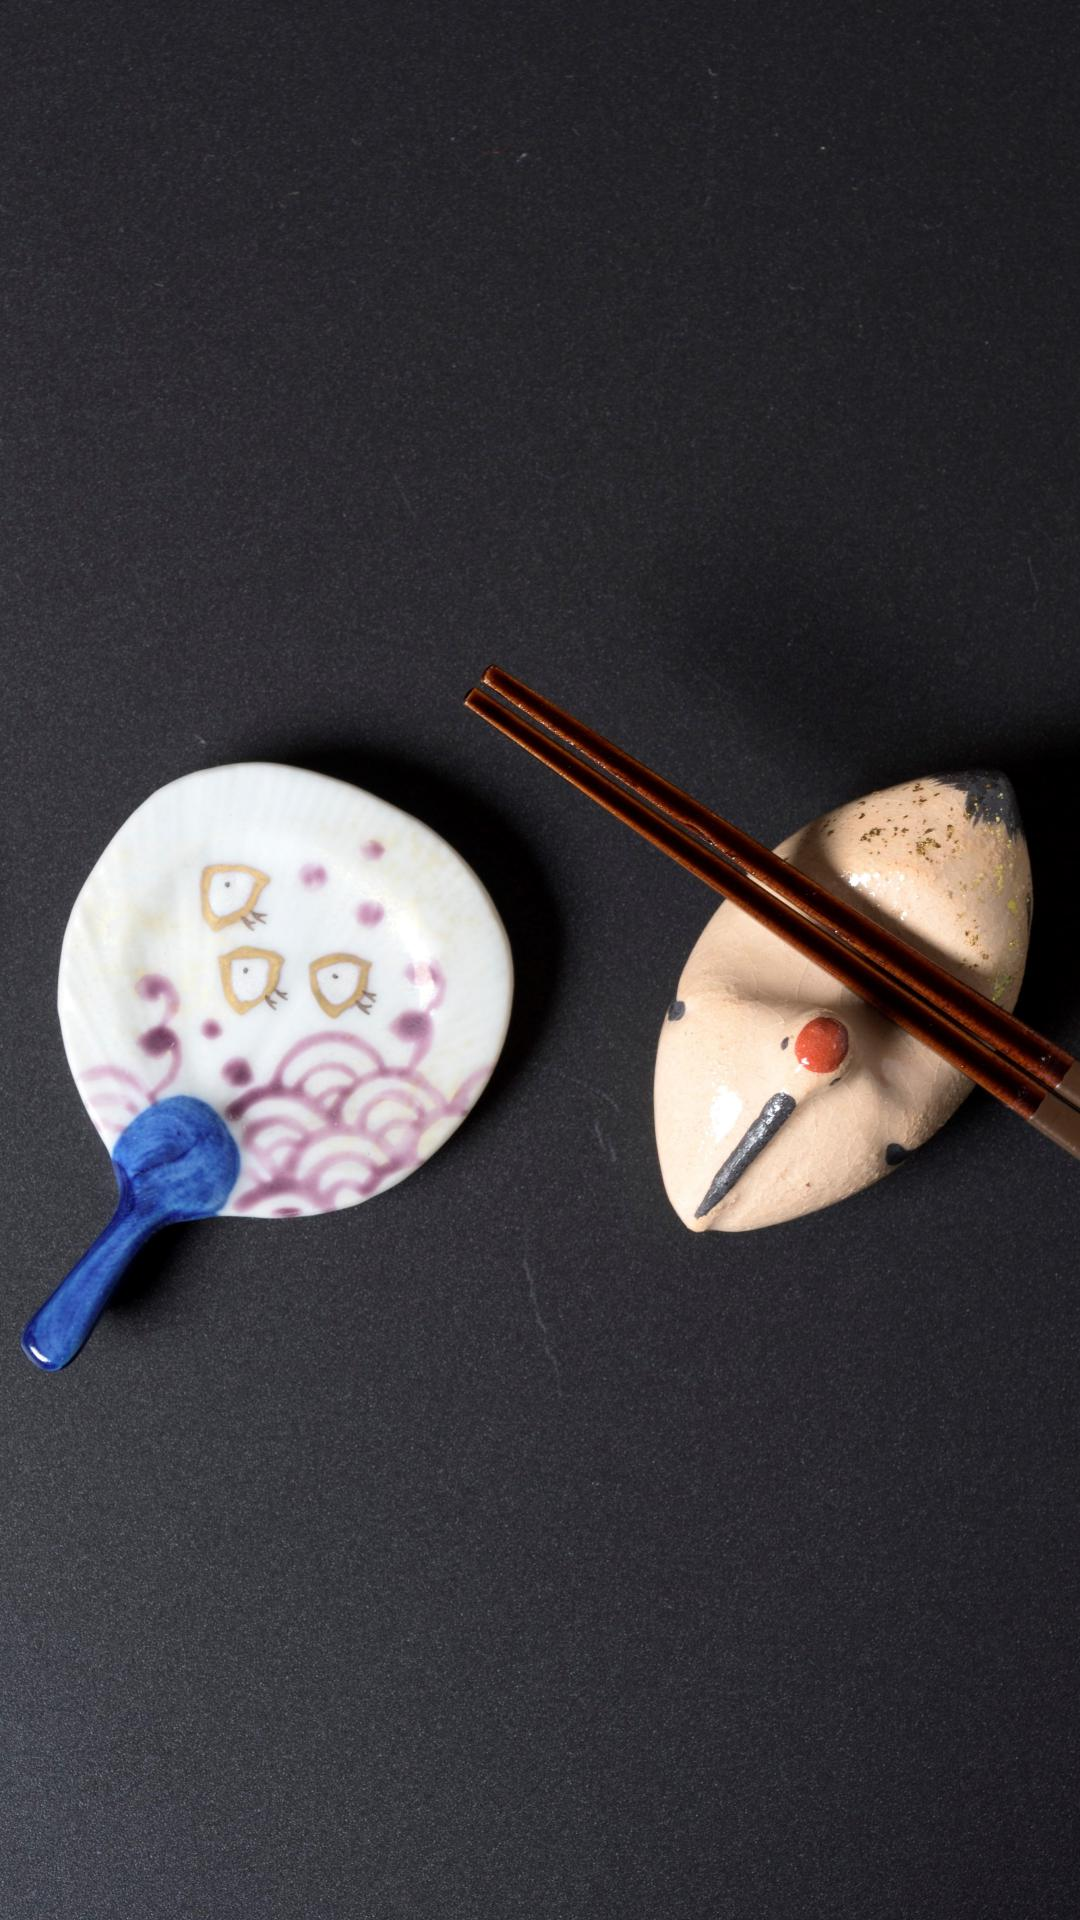 Image of chopstick rests